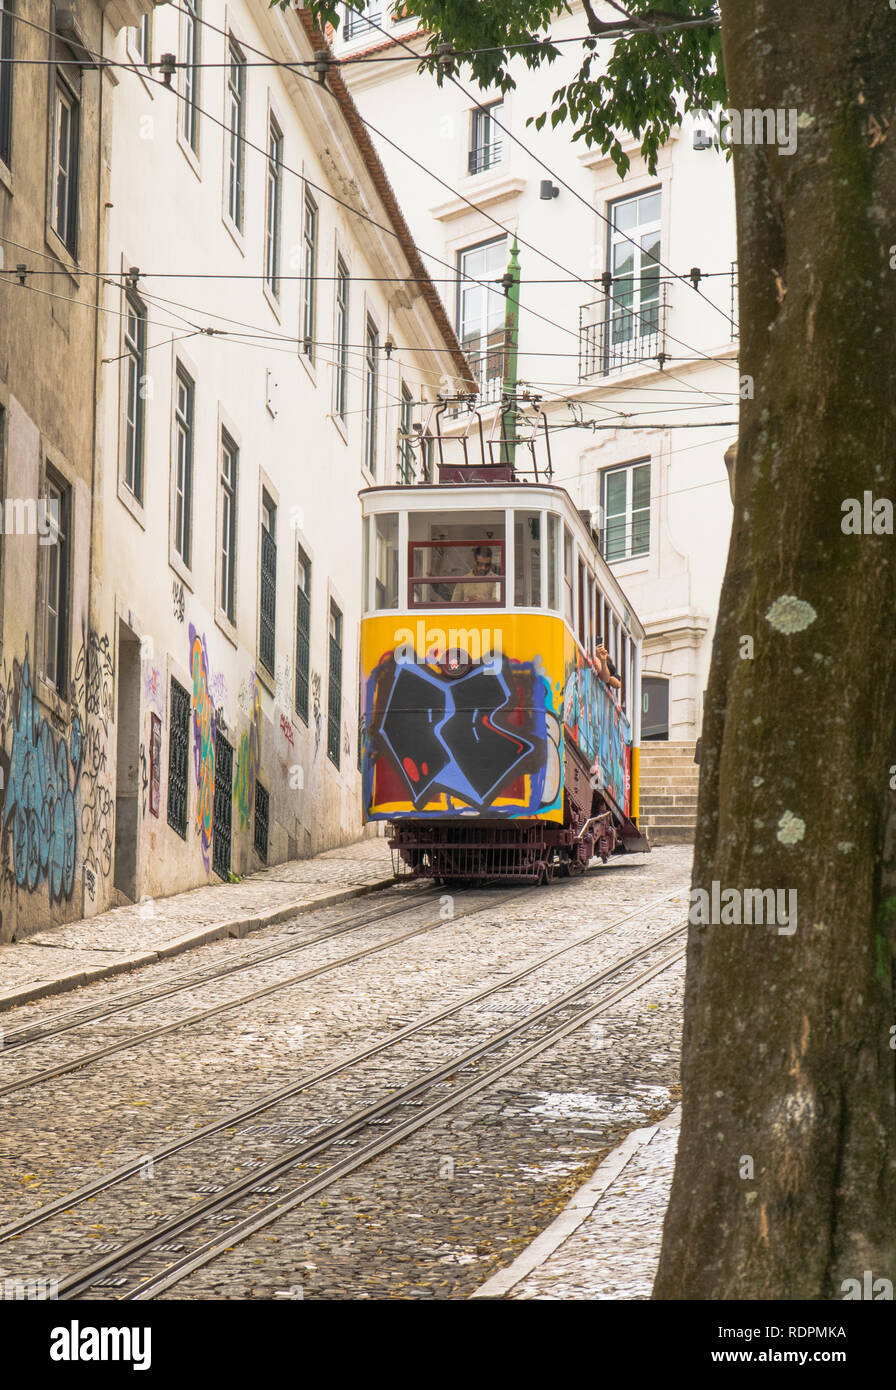 Cable car in Lisbon - Stock Image